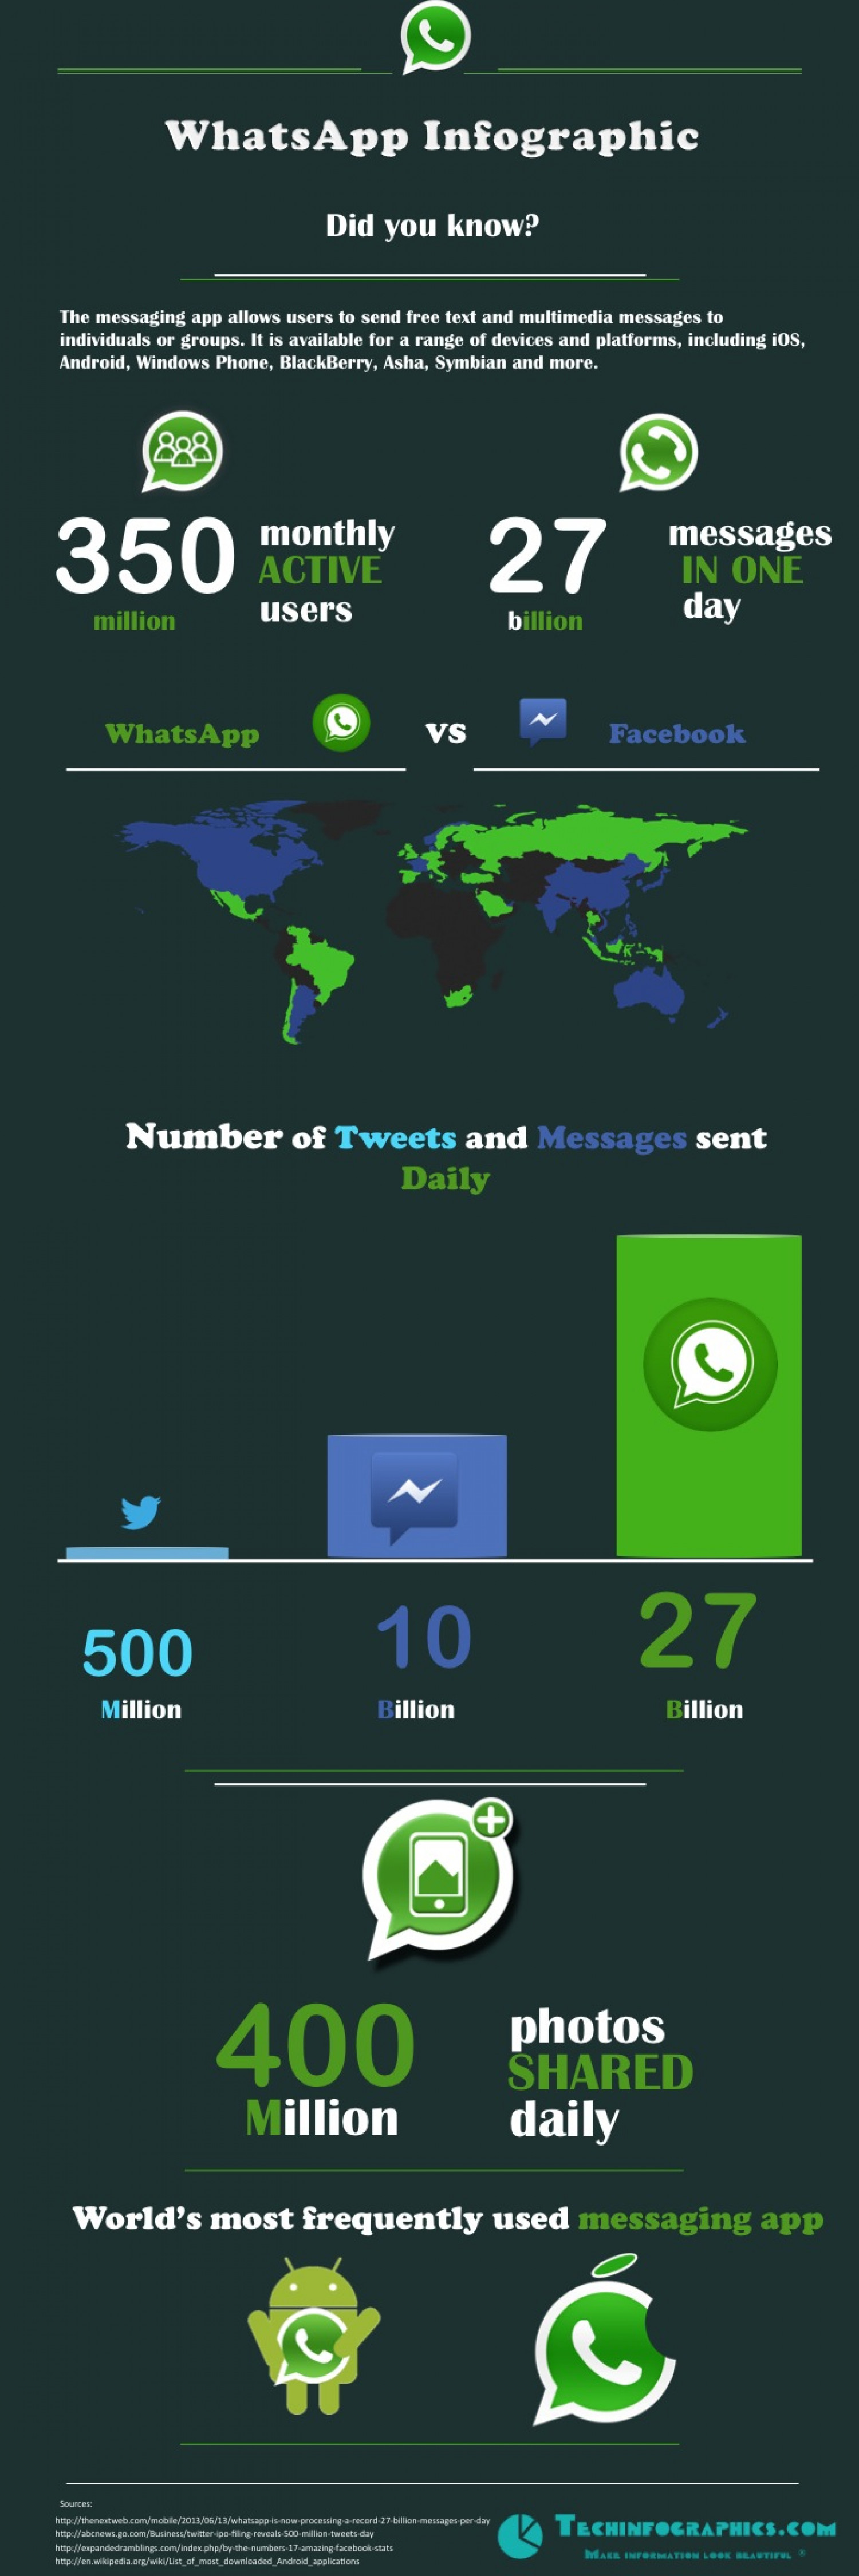 WhatsApp overhaul Facebook and Twitter Infographic